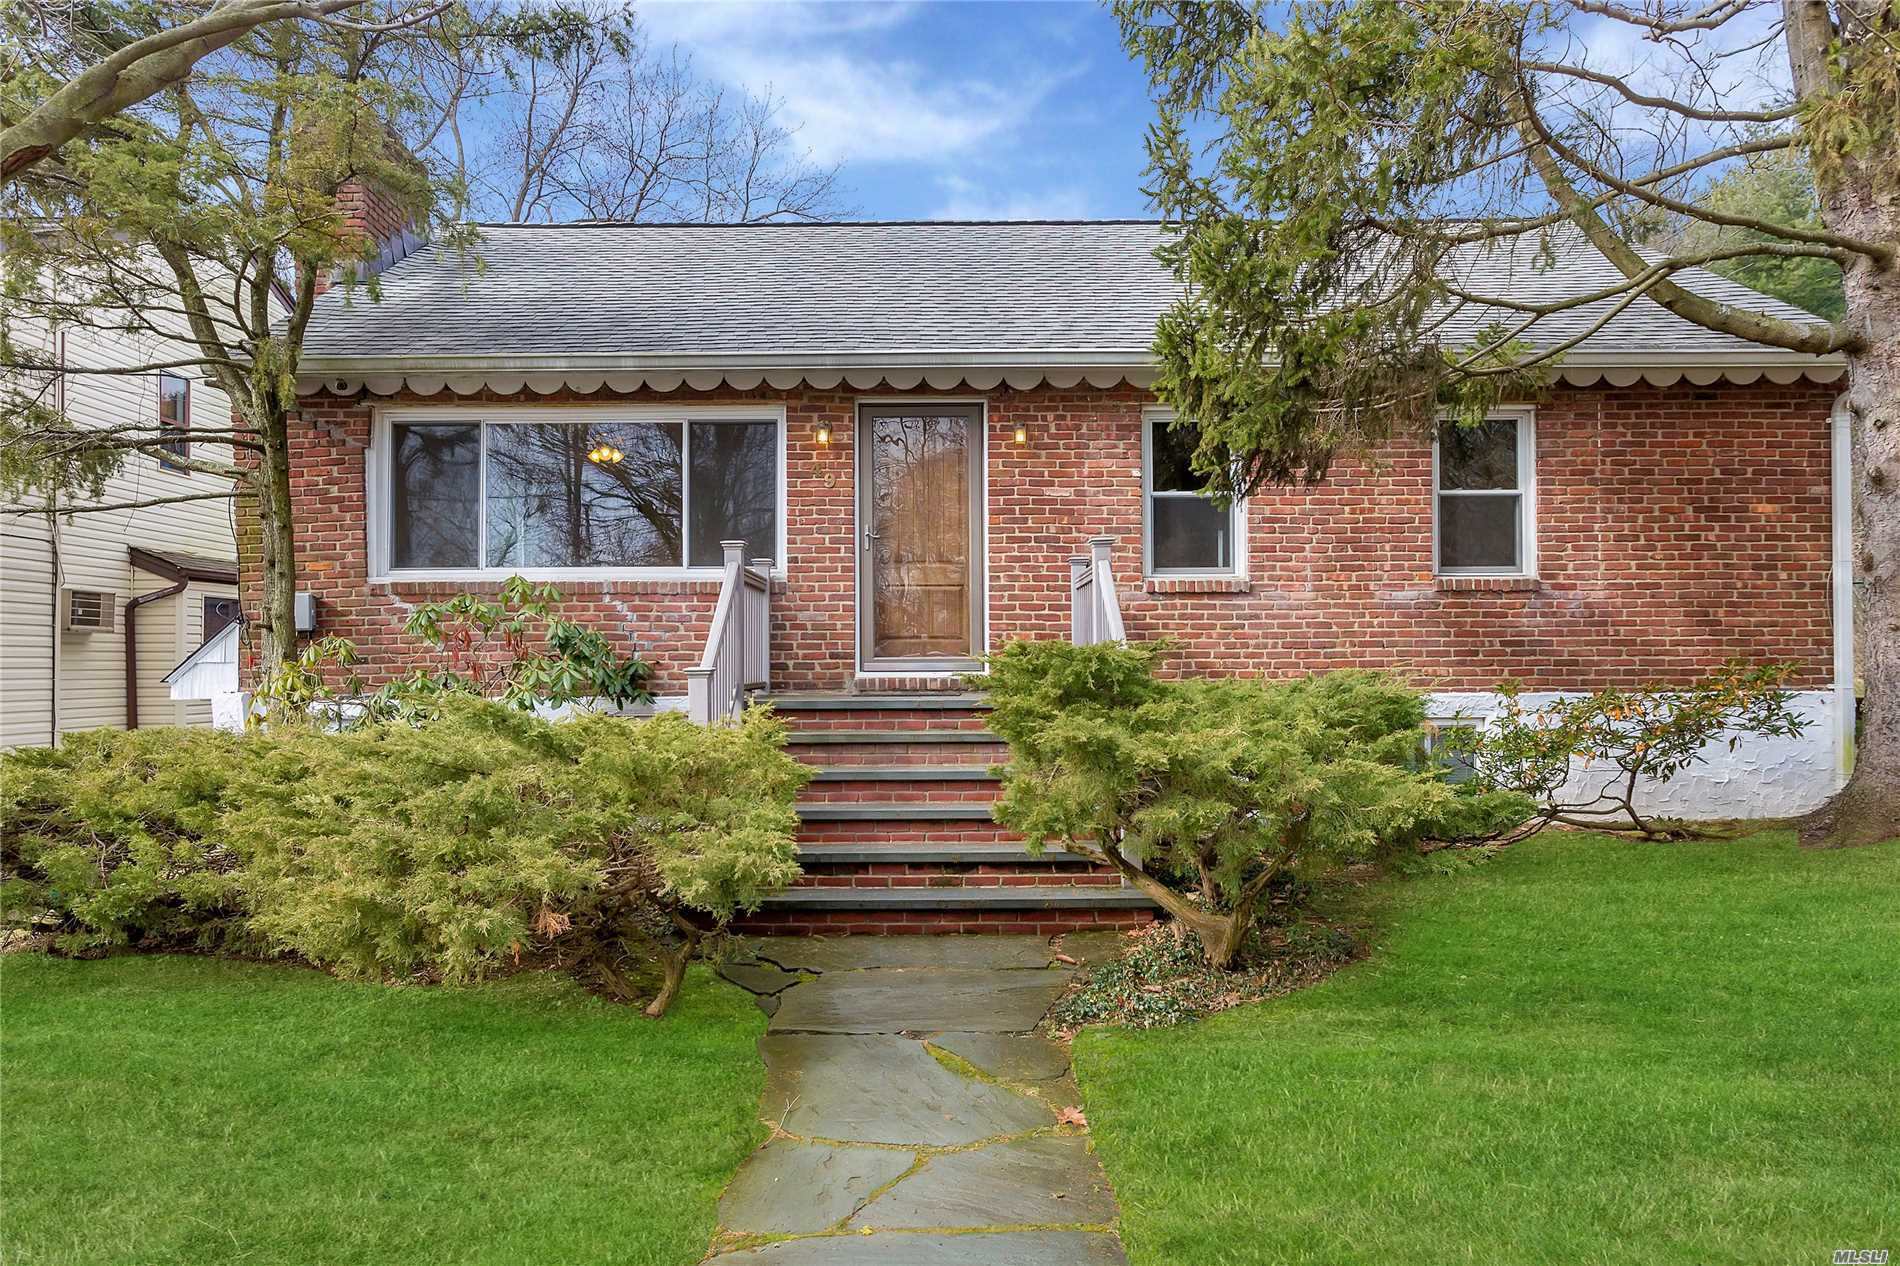 Newly Renovated Even Electric,  Plumbing . New Open Concept Eat In Kitchen,  New Baths, Marble Fire Place From Rhode Island. Hardwood Floors, High End Appliances, Washer And Dryer In Each Floor. Near Park( Beach, Boat Basin, Tennis Ct. Swimming Pool, Roller Blade Pl. Picnic Area).